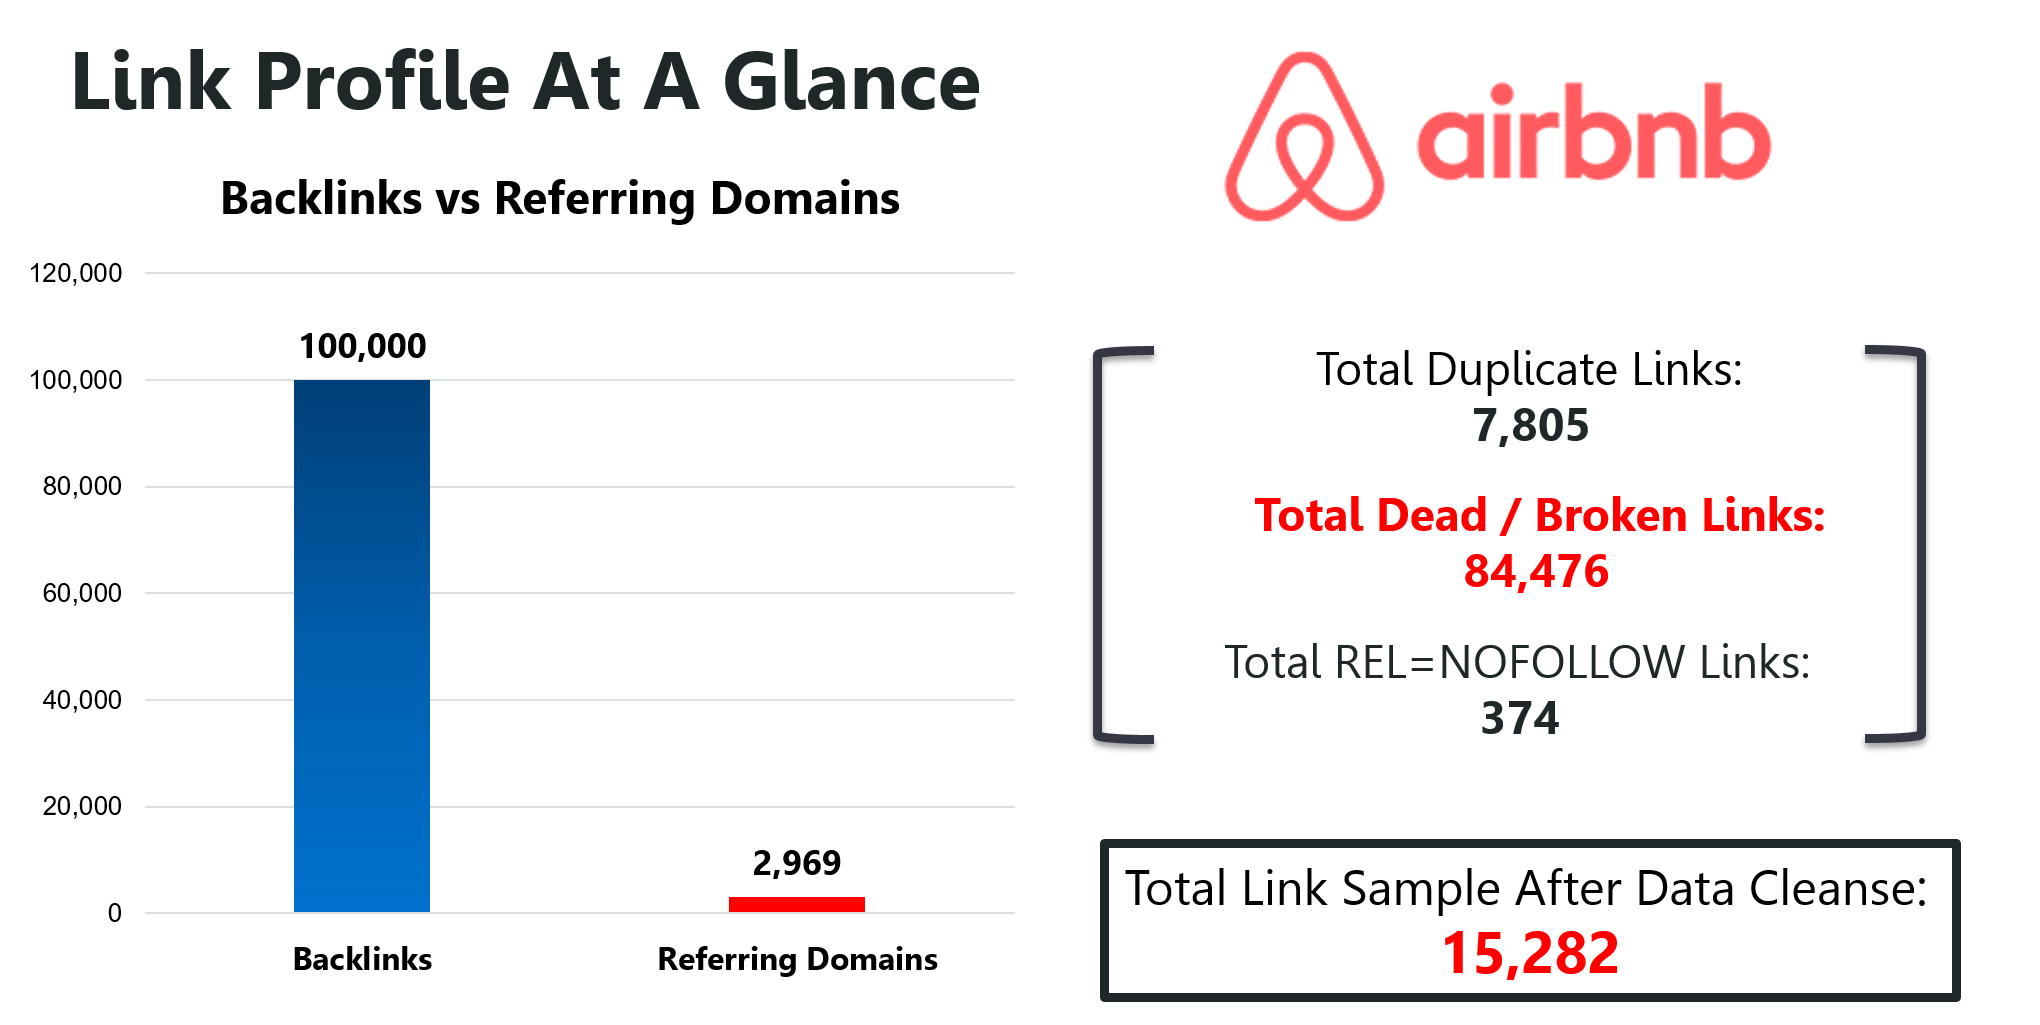 Airbnb Link Profile At A Glance